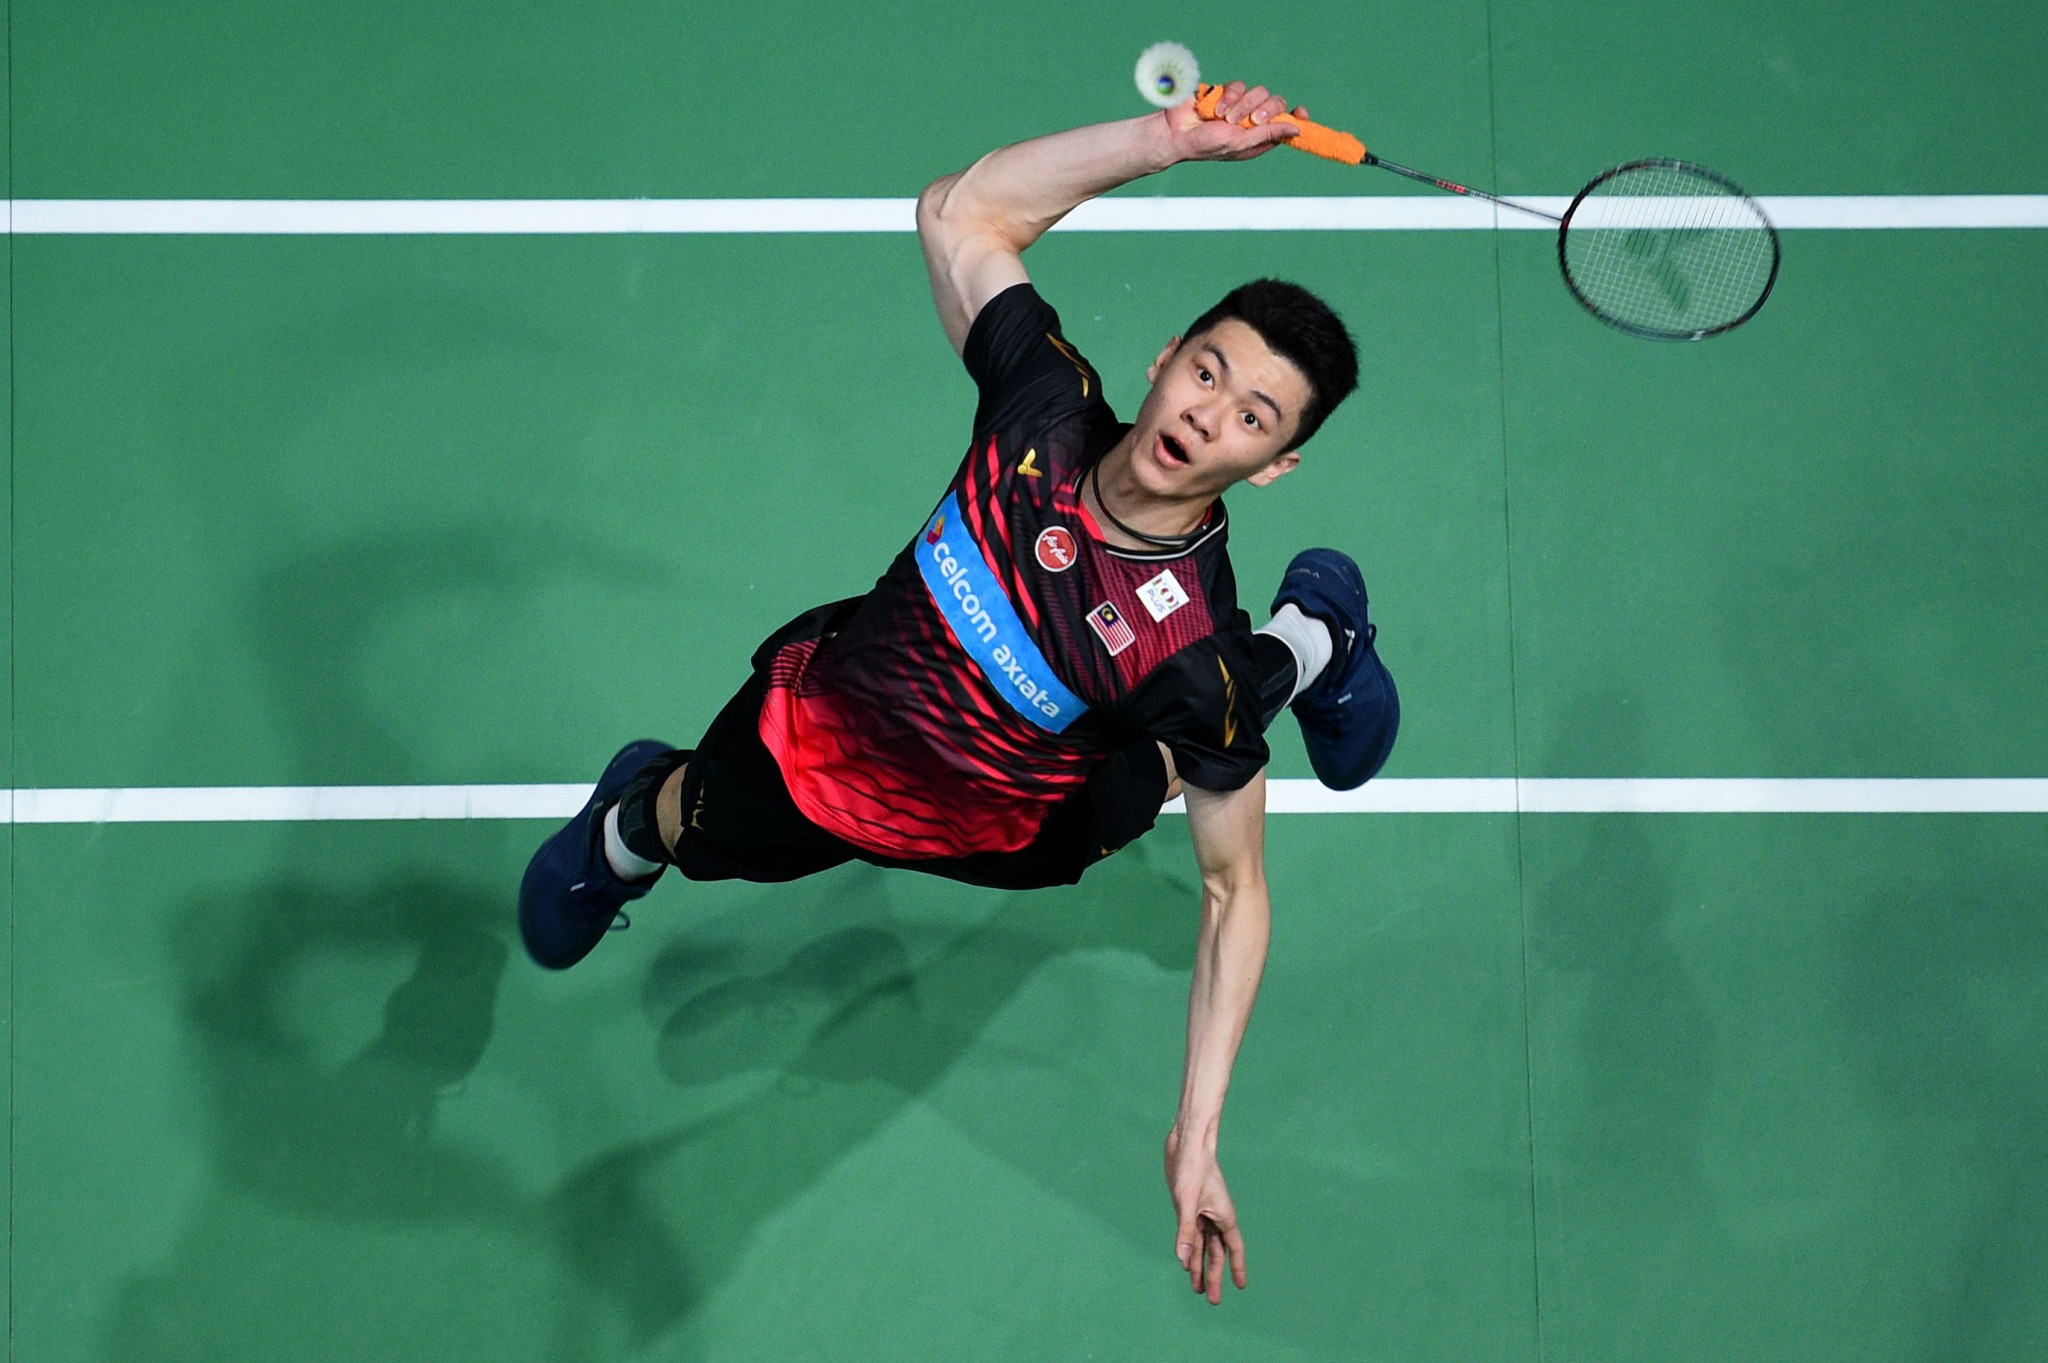 Malaysia will hope for badminton success at the rescheduled Tokyo 2020 Olympic Games ©Getty Images